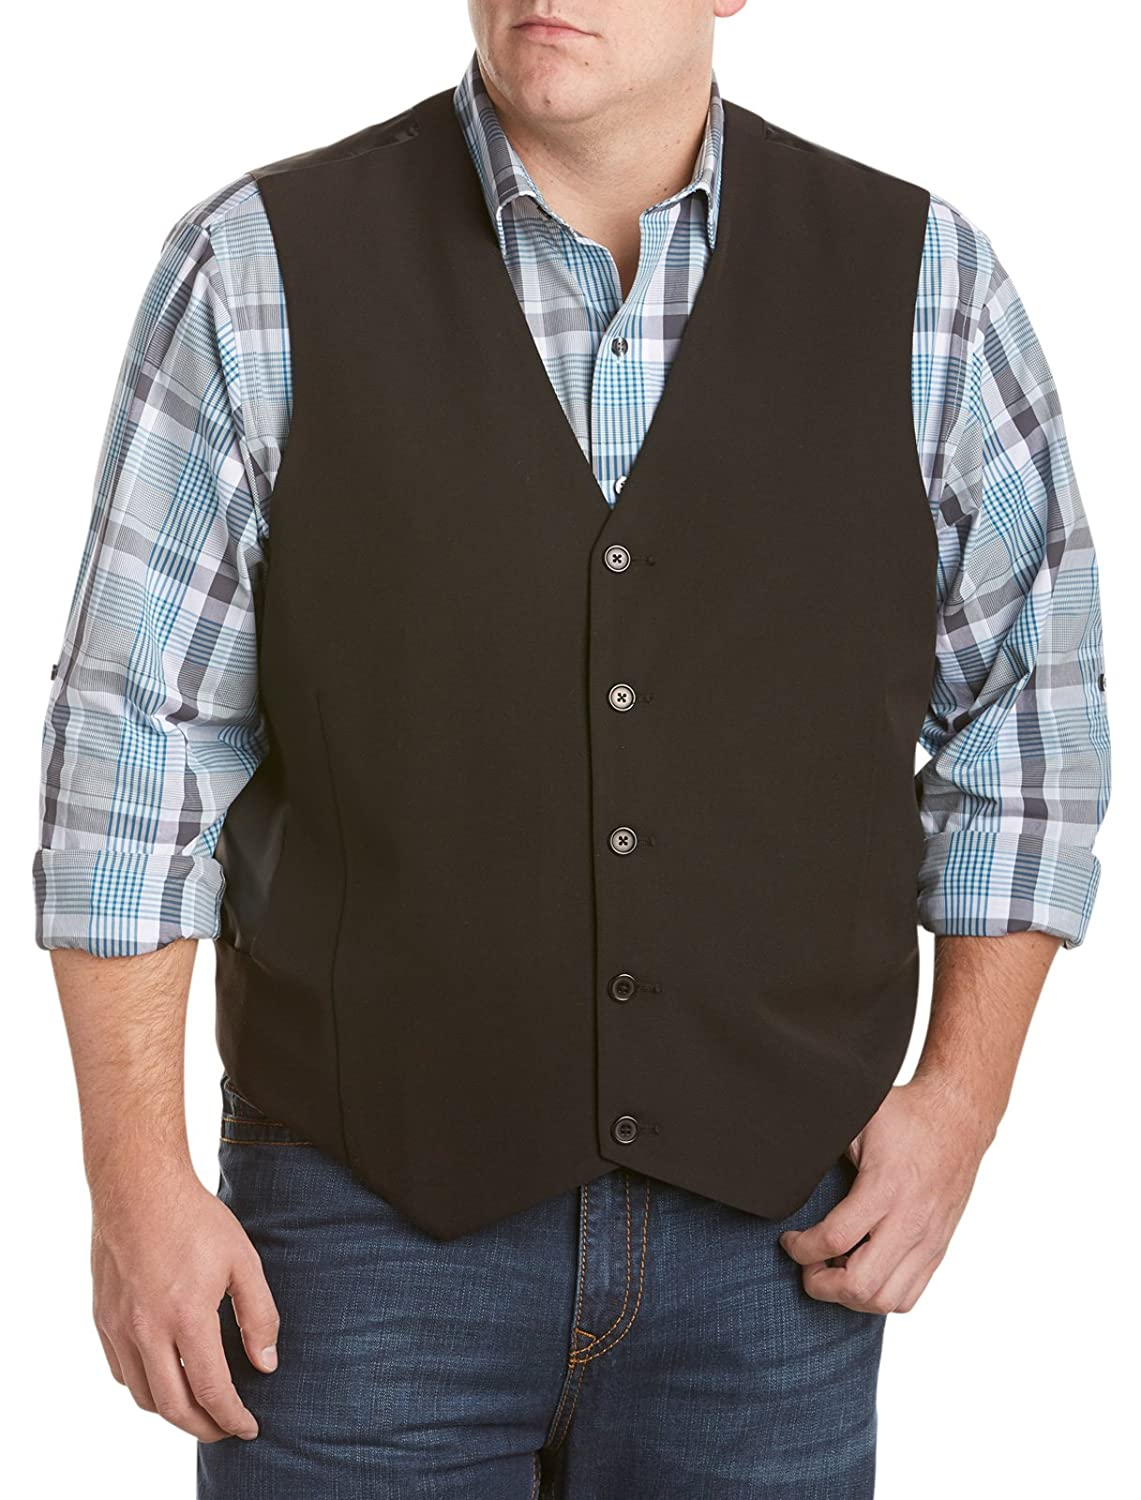 Synrgy by DXL Big and Tall Vest